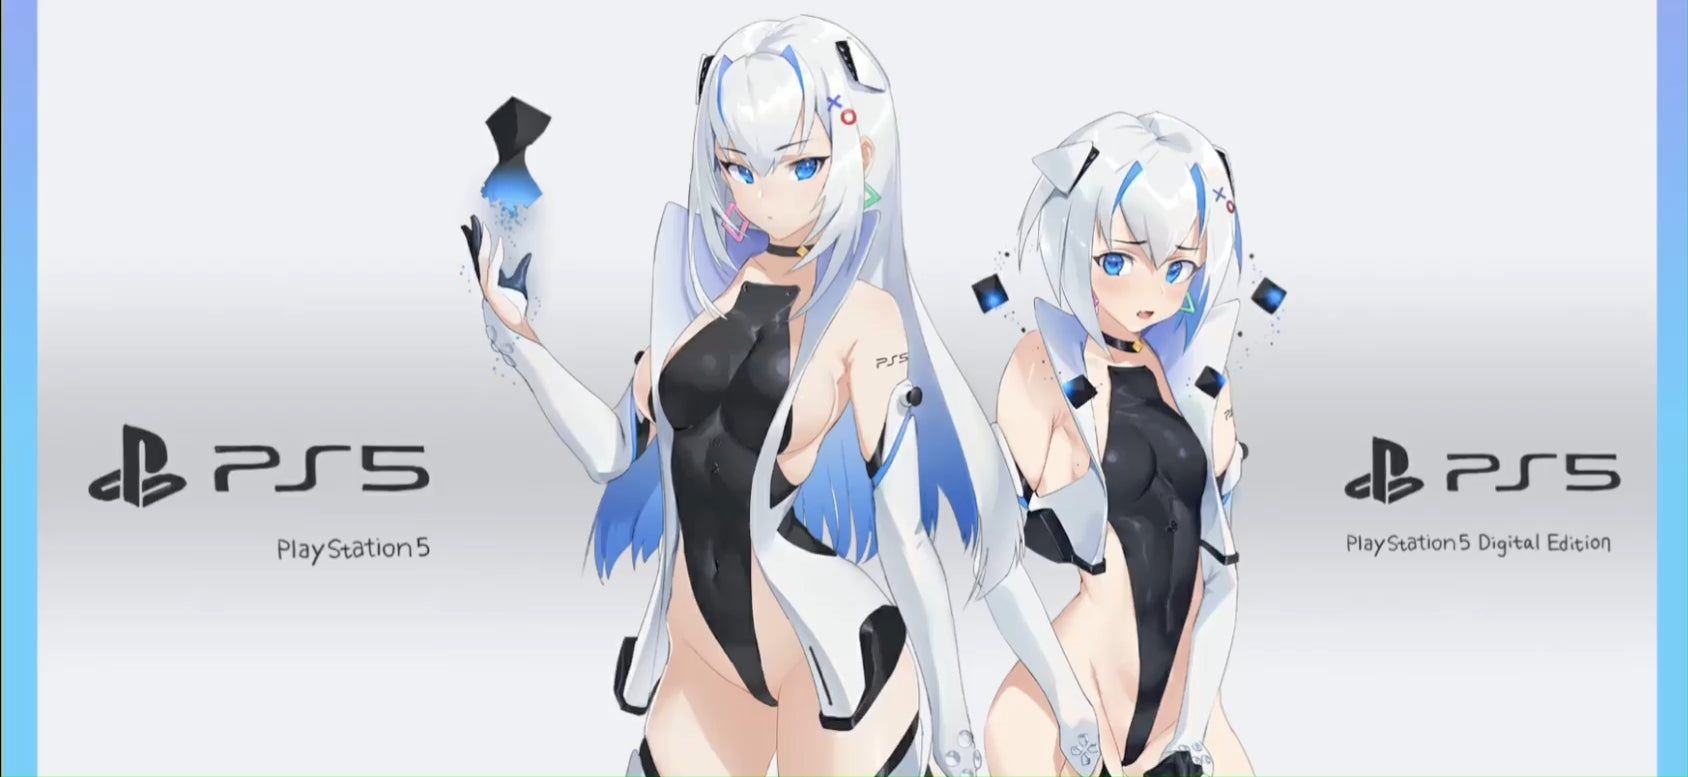 Ps10 Anime Girl Wallpapers - Wallpaper Cave